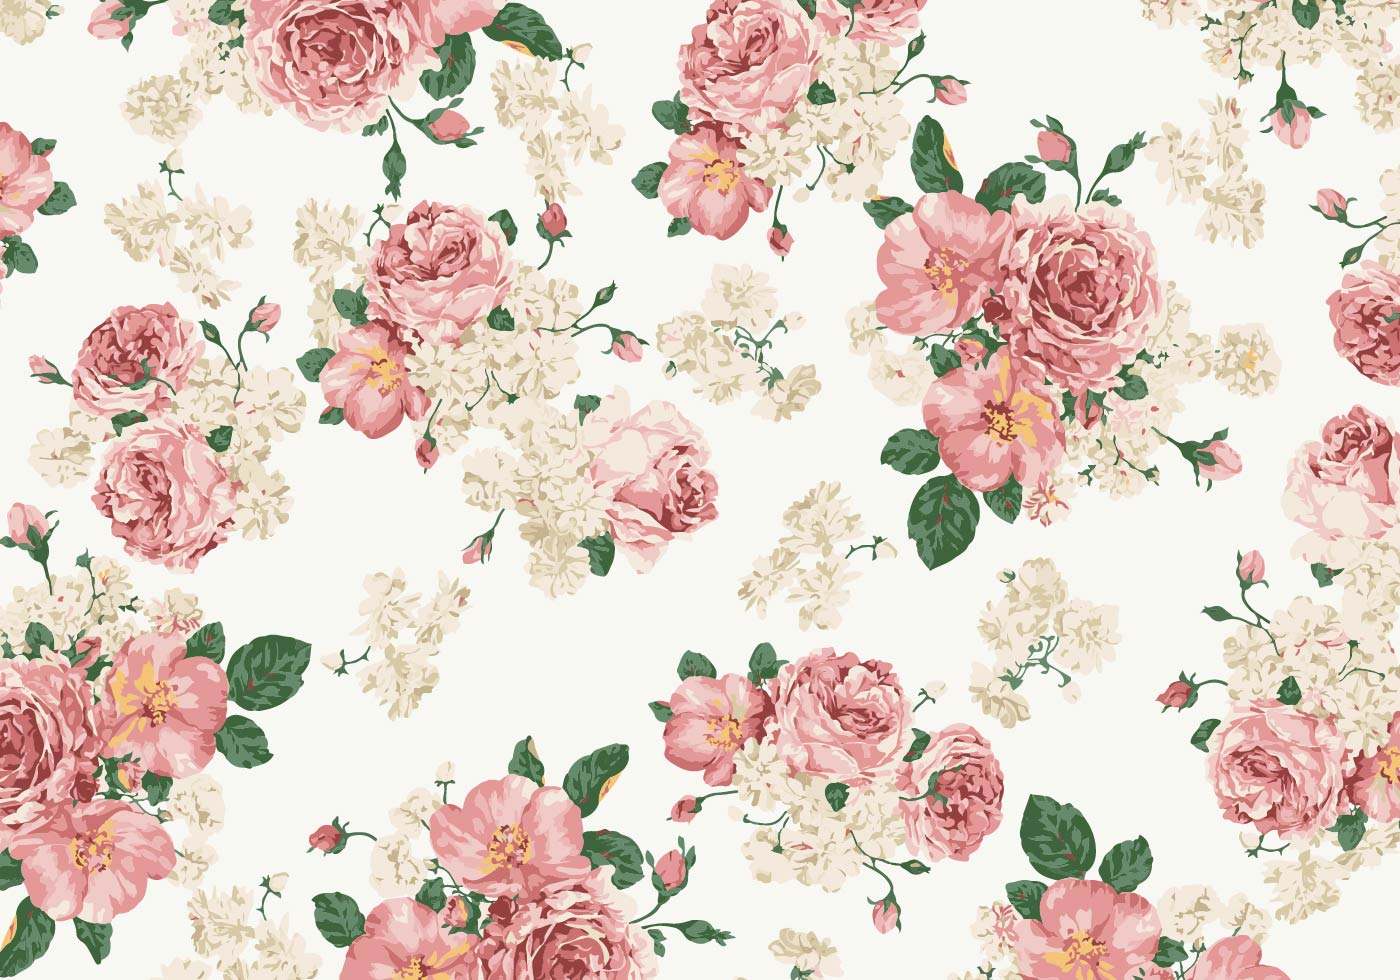 Vintage Pink And White Roses Vector Background Download Free